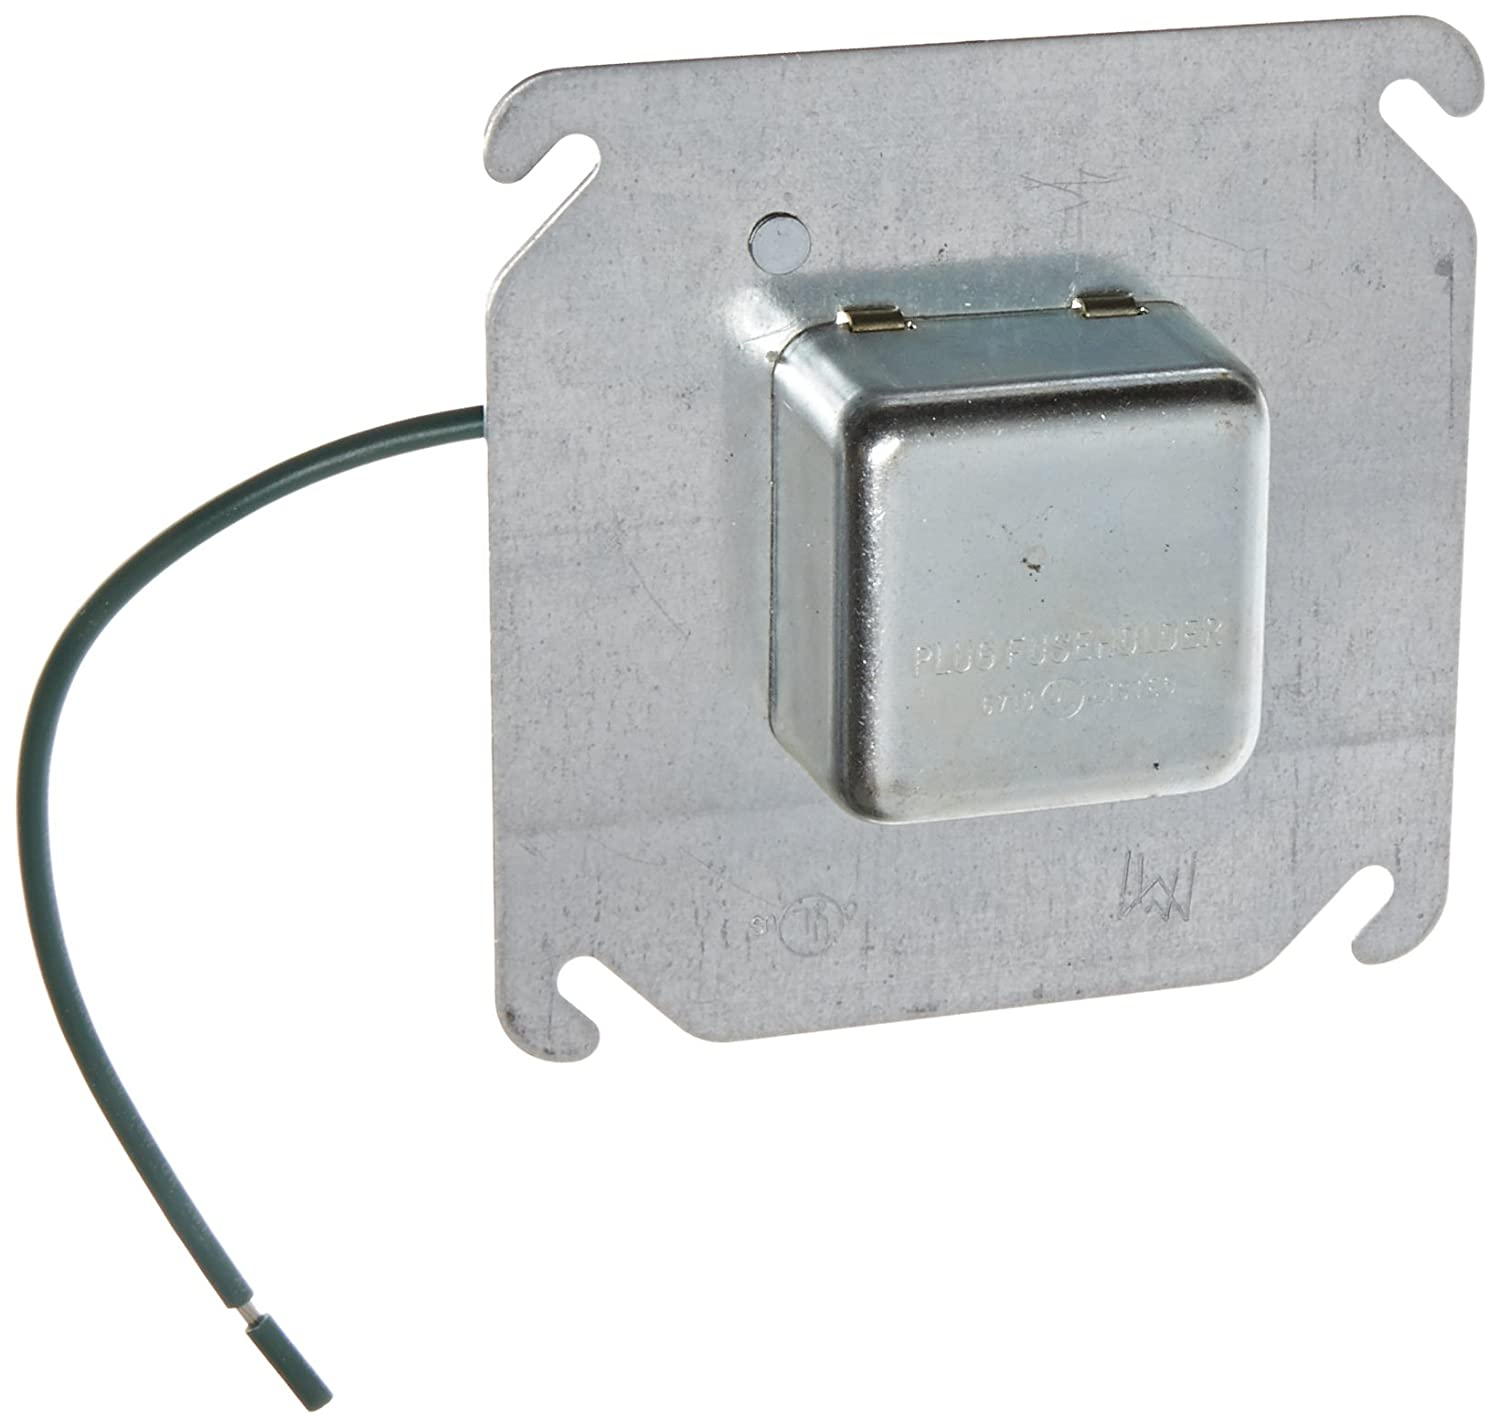 Mersen COX 4 Octagon Box Cover for Edison-Base Fuse Holder